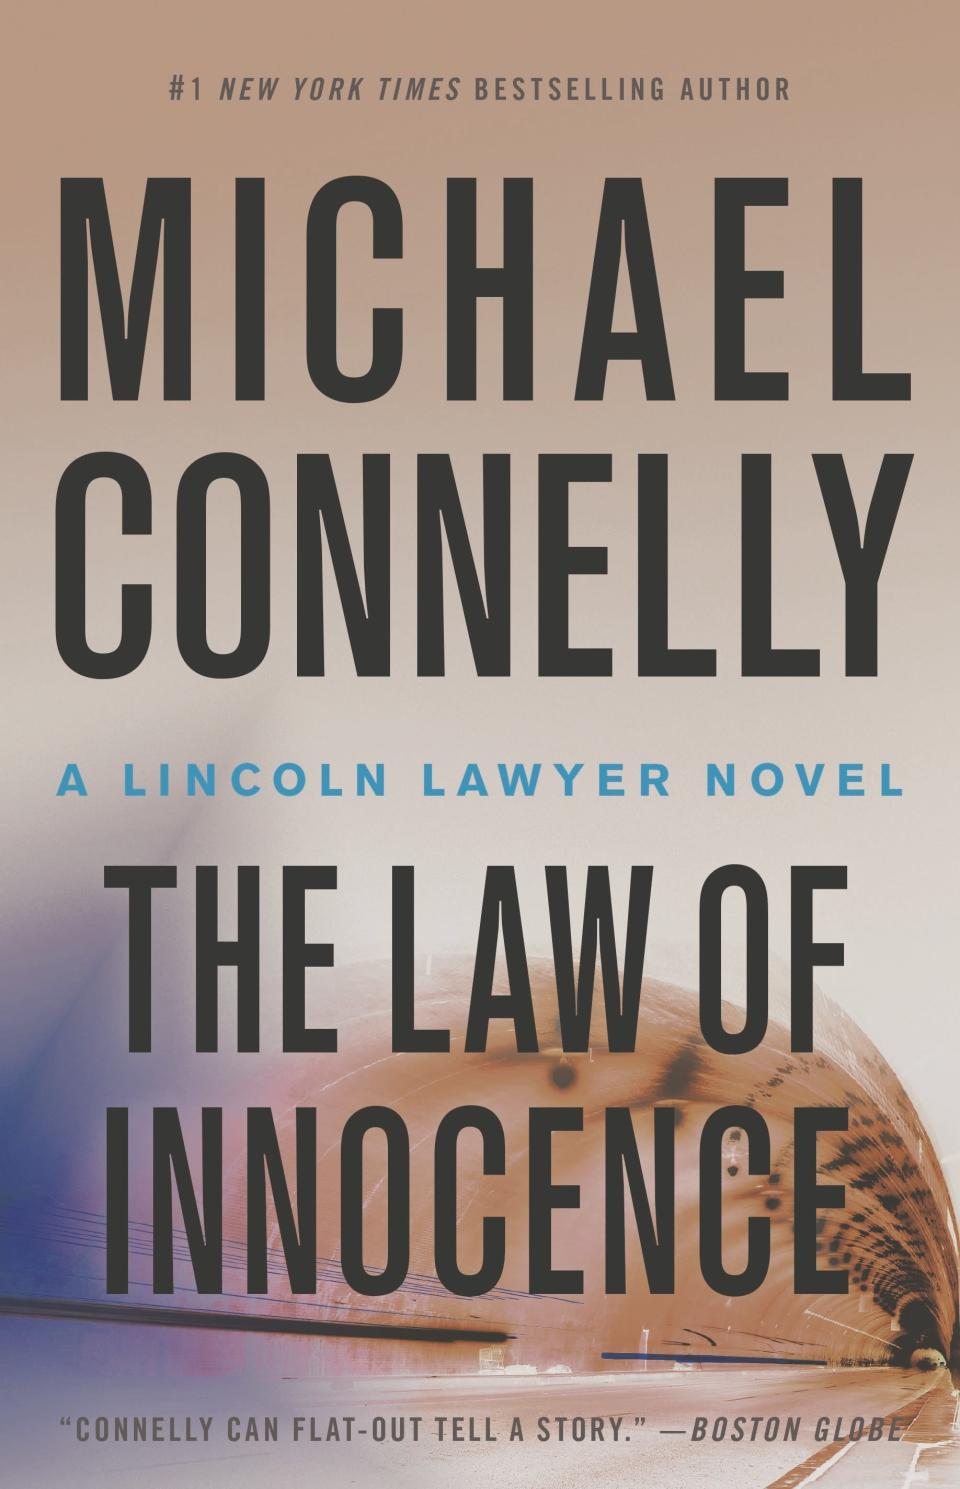 """This cover image released by Little, Brown & Company shows """"The Law of Innocence"""" by Michael Connelly. (Little, Brown & Co. via AP)"""